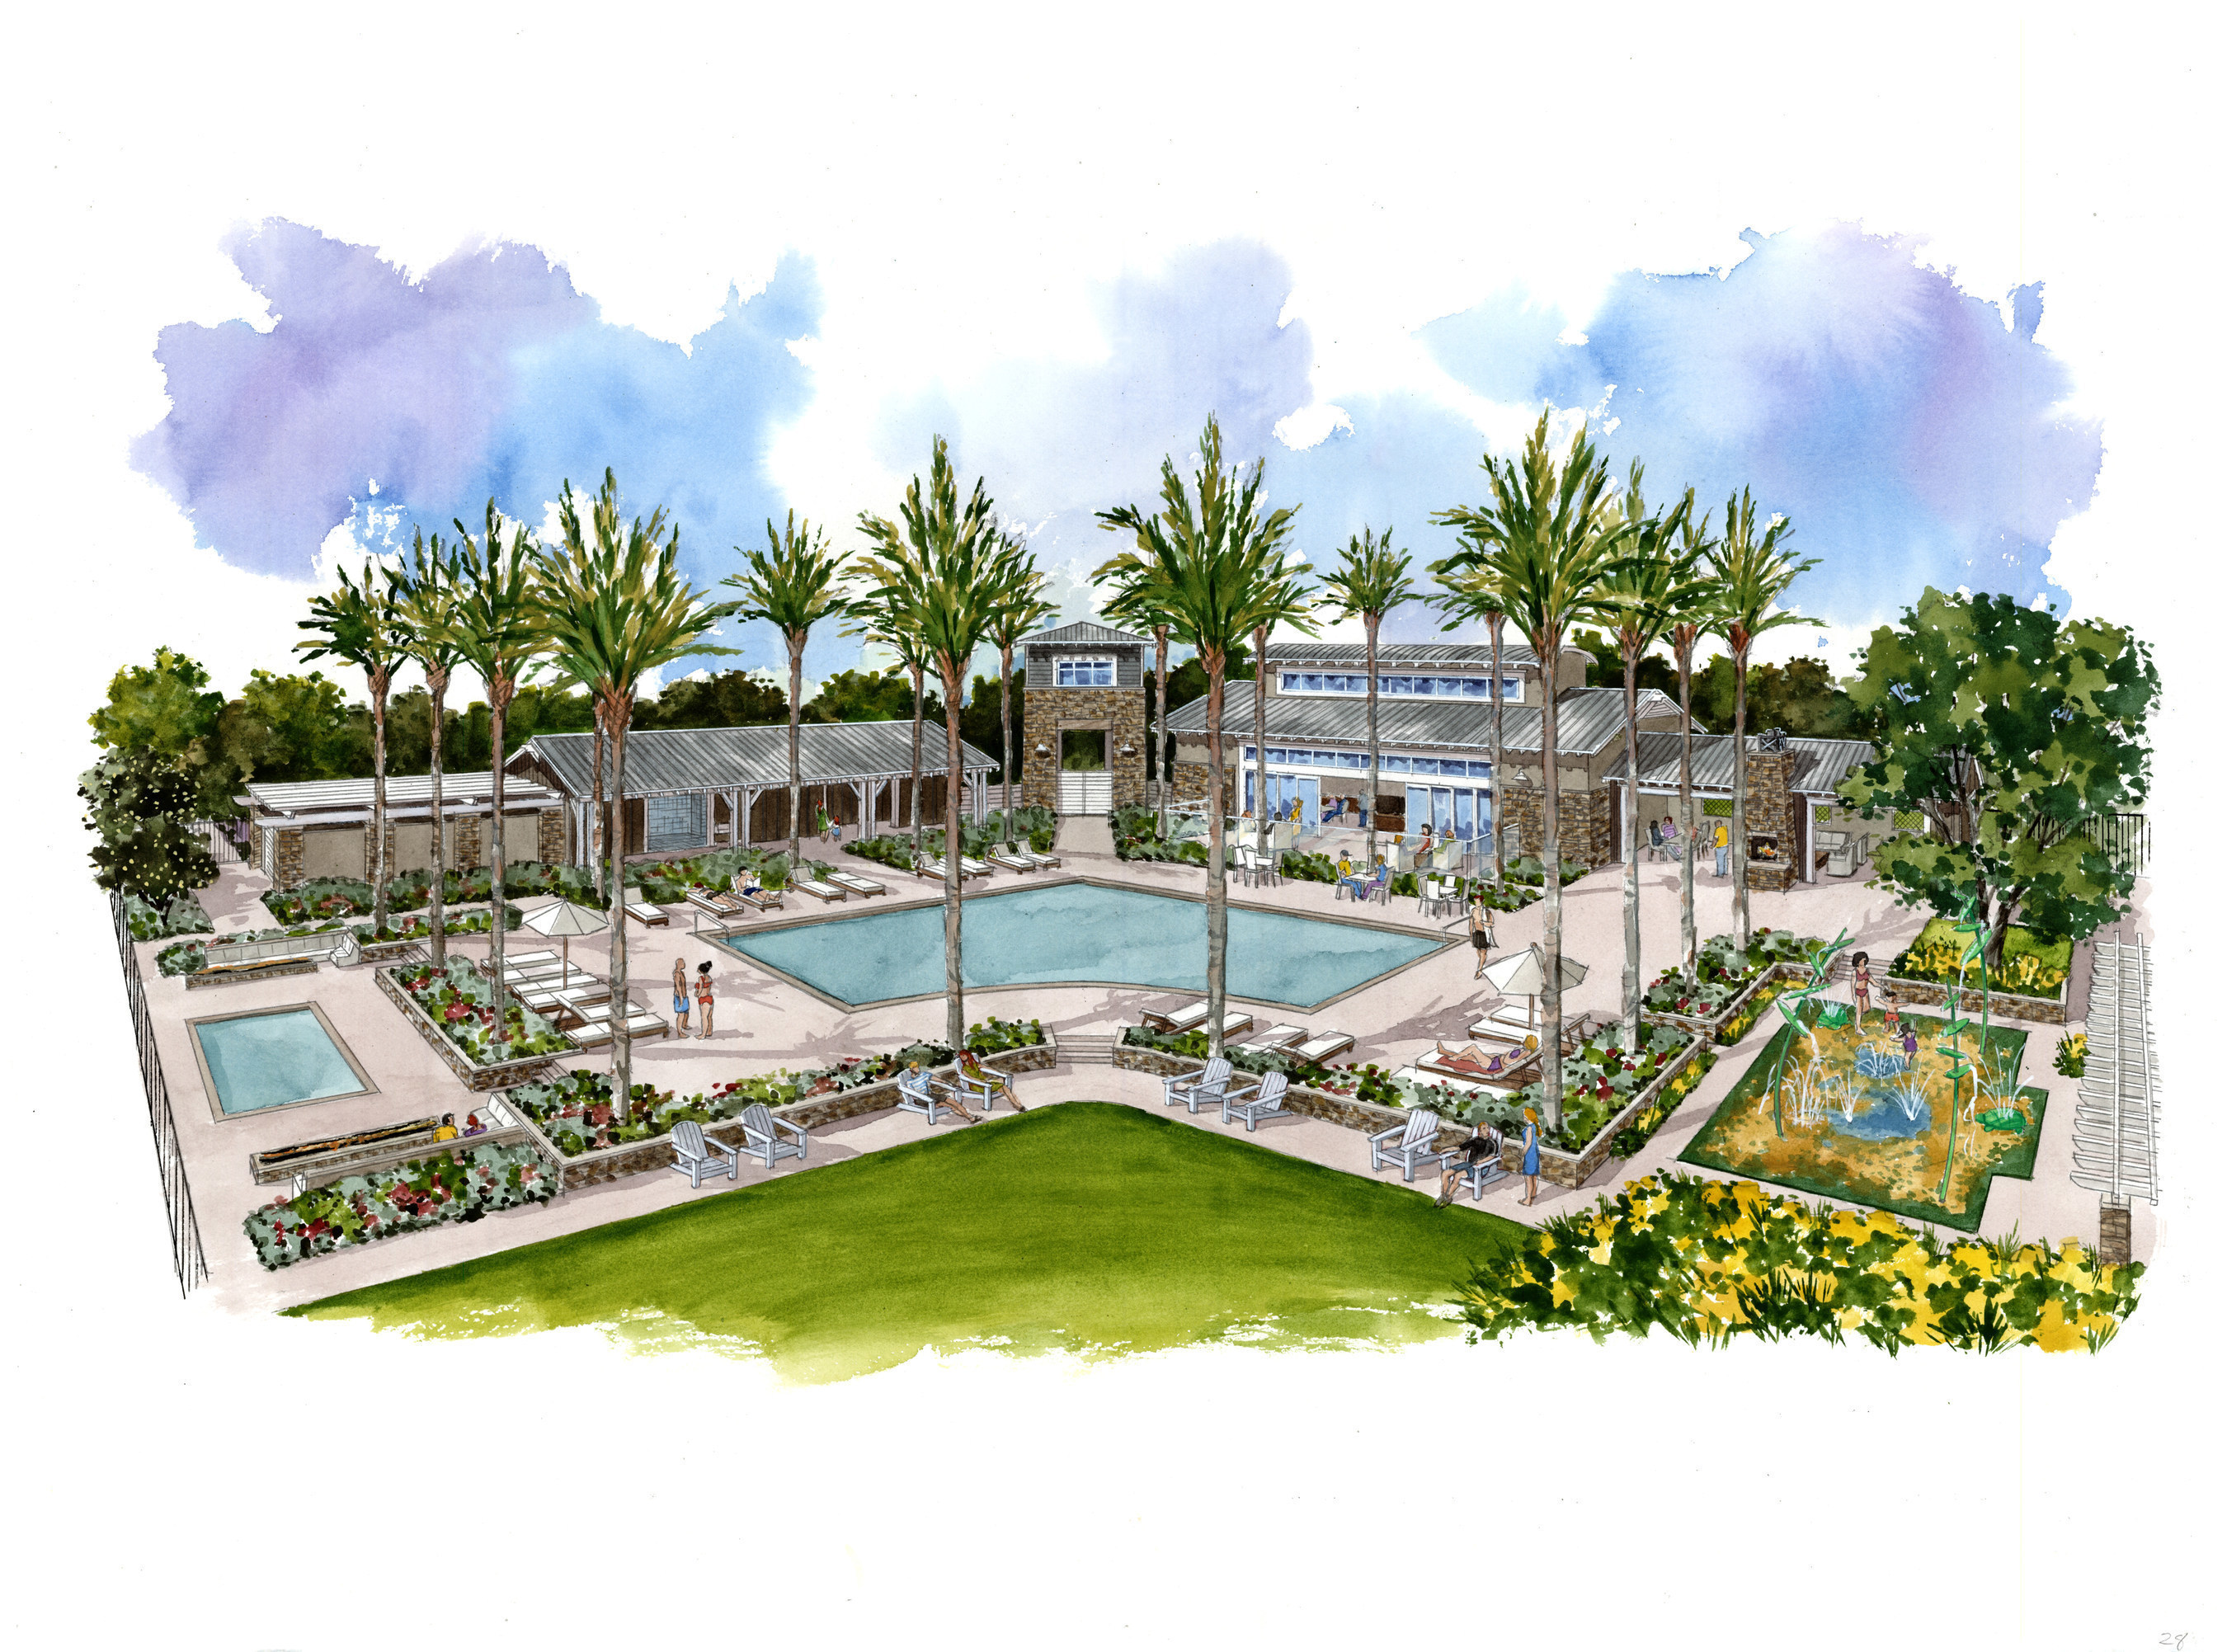 Standard Pacific Homes Announces May 30 Grand Opening Of Greenwood In Tustin Legacy